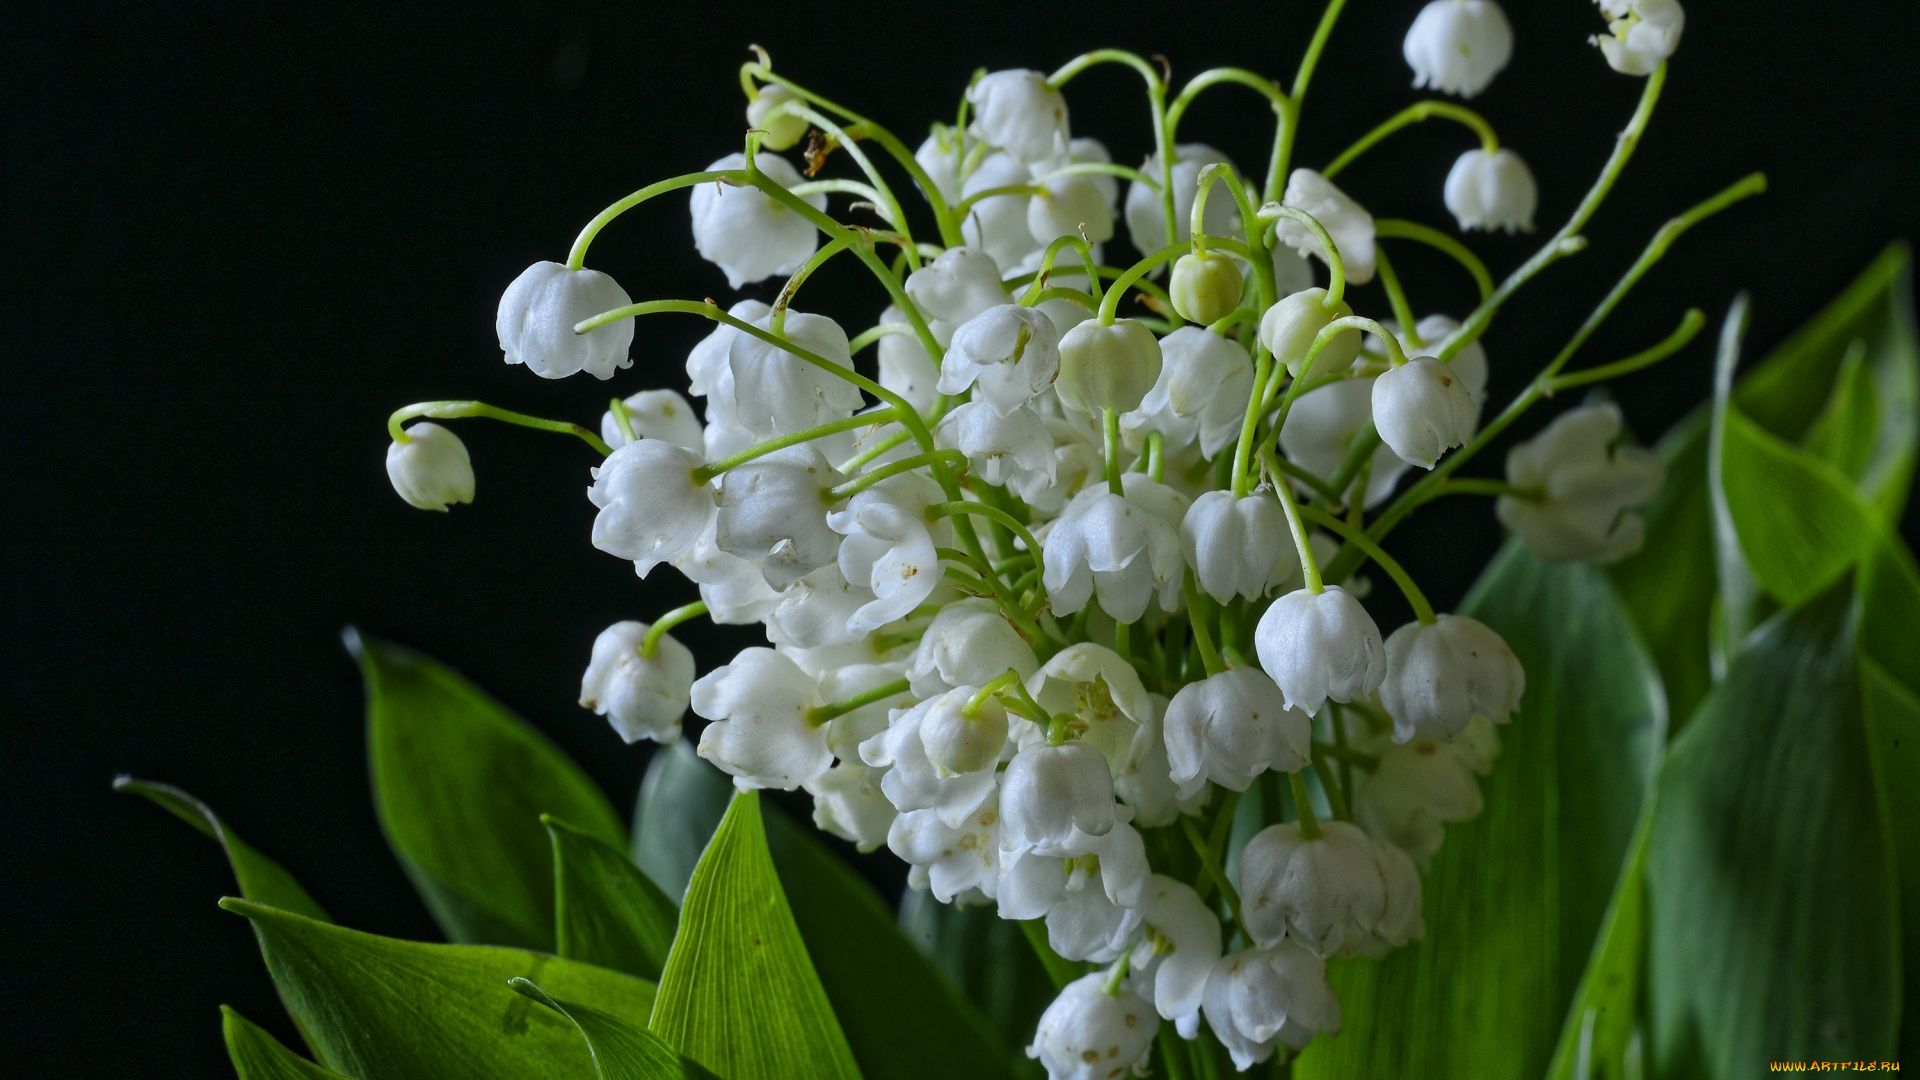 Lily Of The Valley hd wallpaper 1080